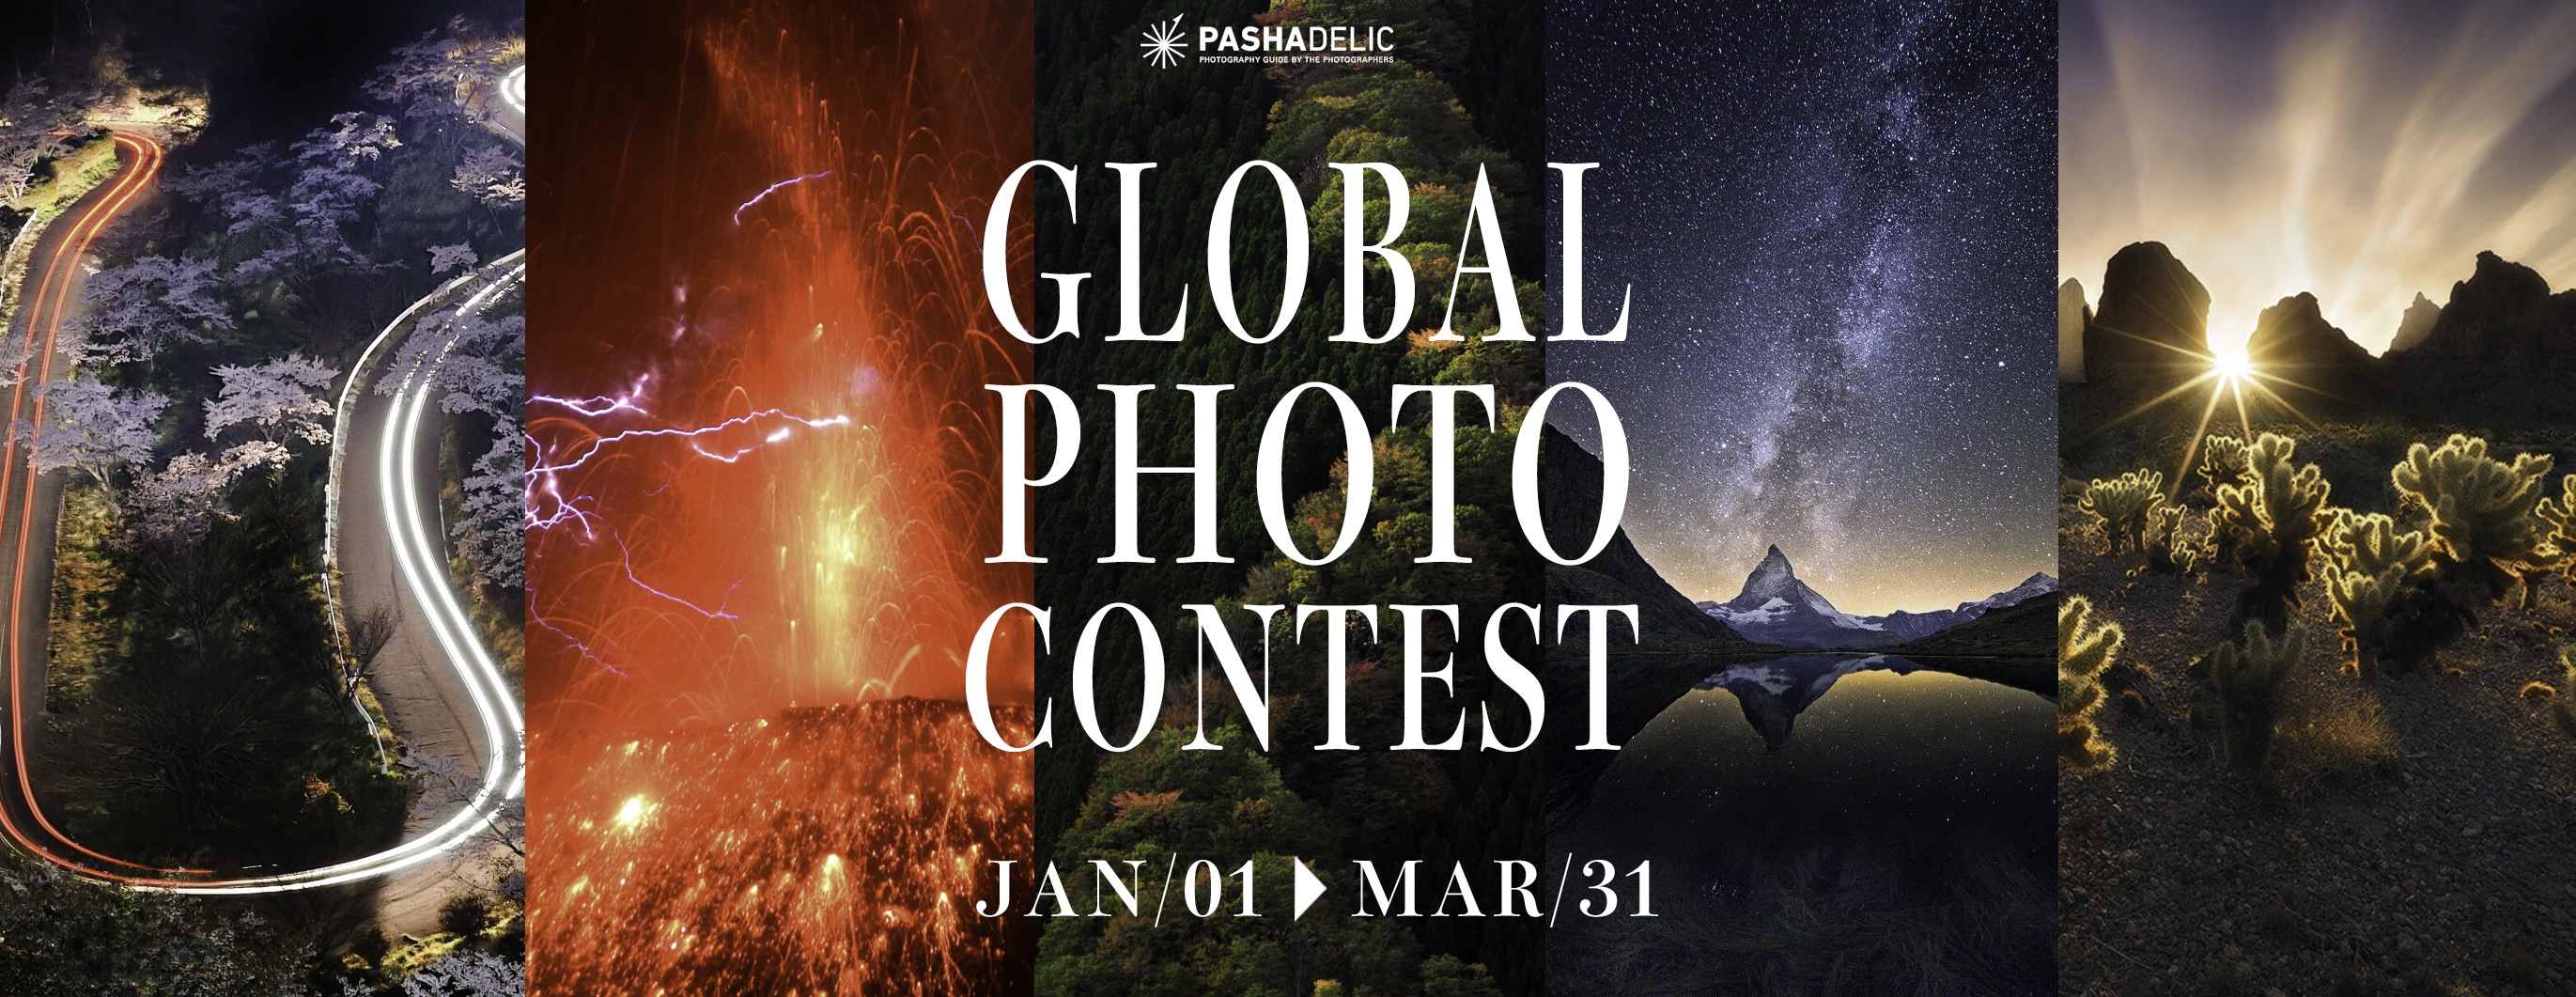 PASHADELIC Global Photo Contest 2018